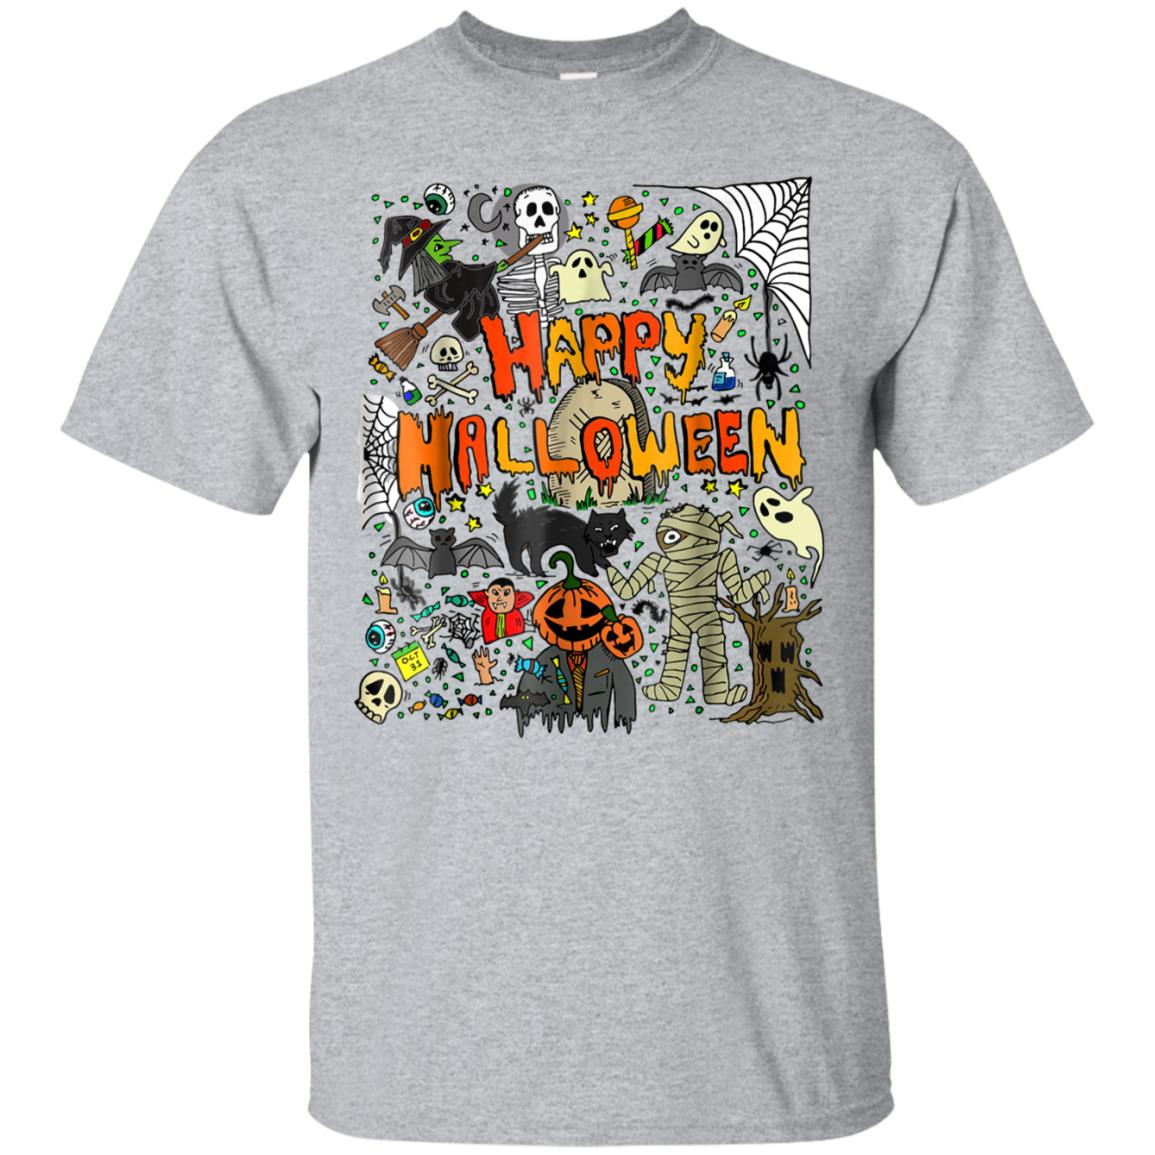 Happy Halloween Scary Retro T Shirt 99promocode